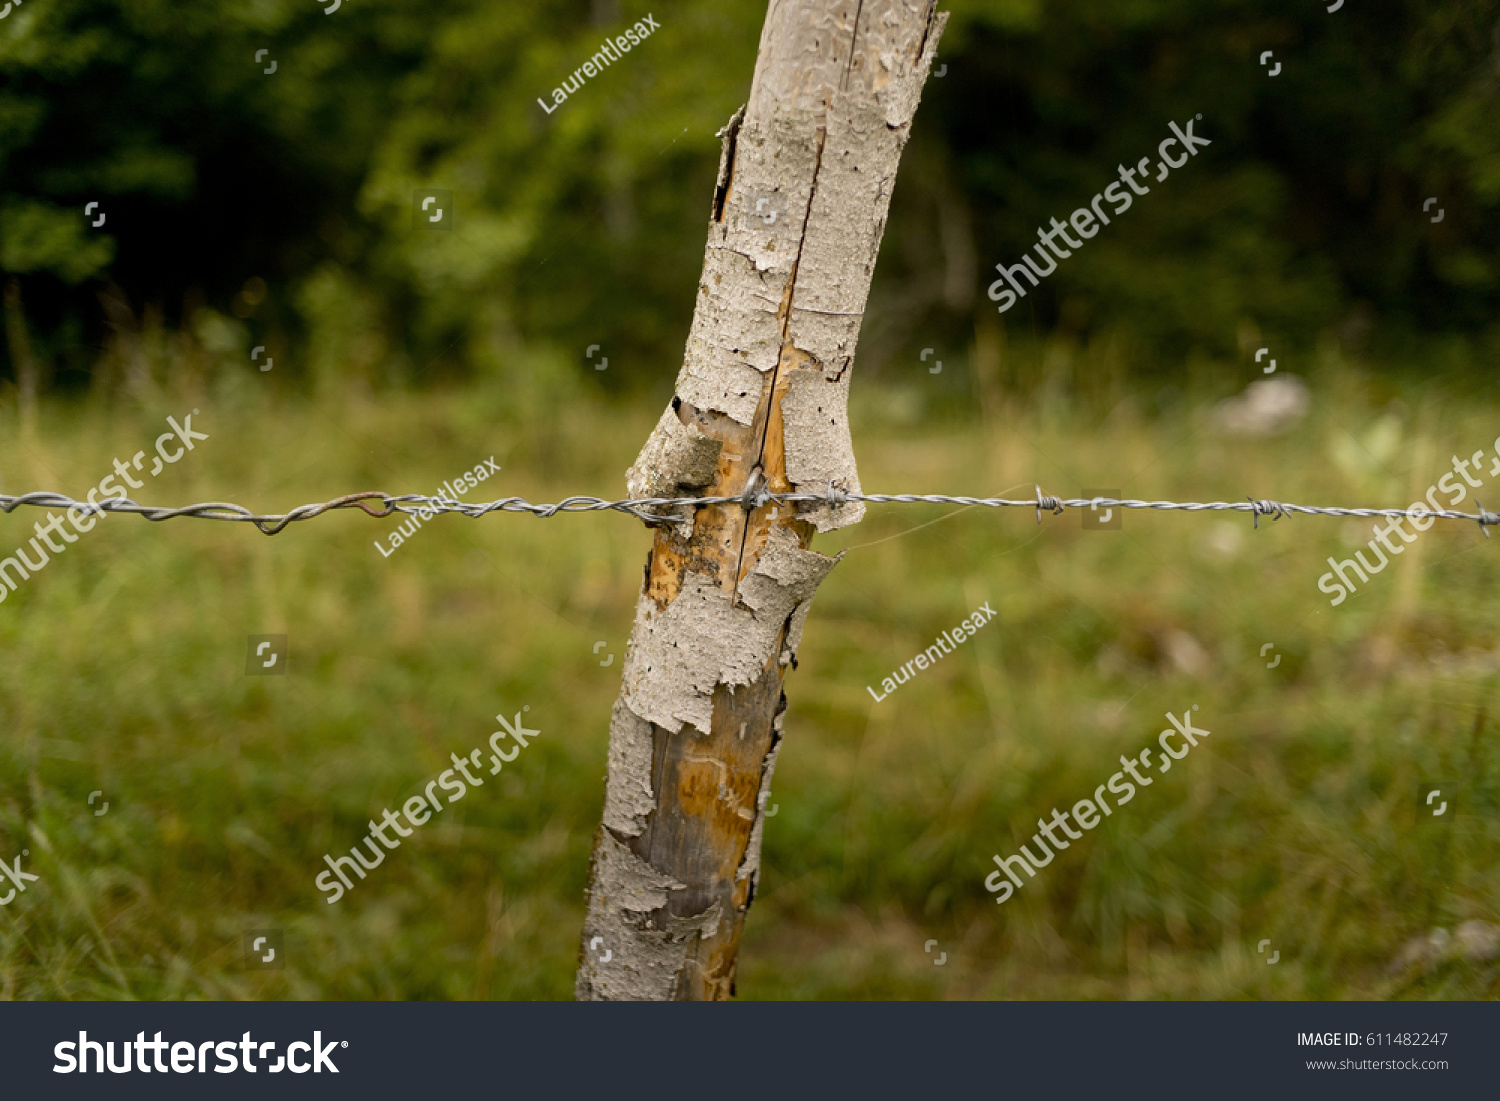 Barbed wire enclosing a field at countryside with green field and wood in the background #611482247